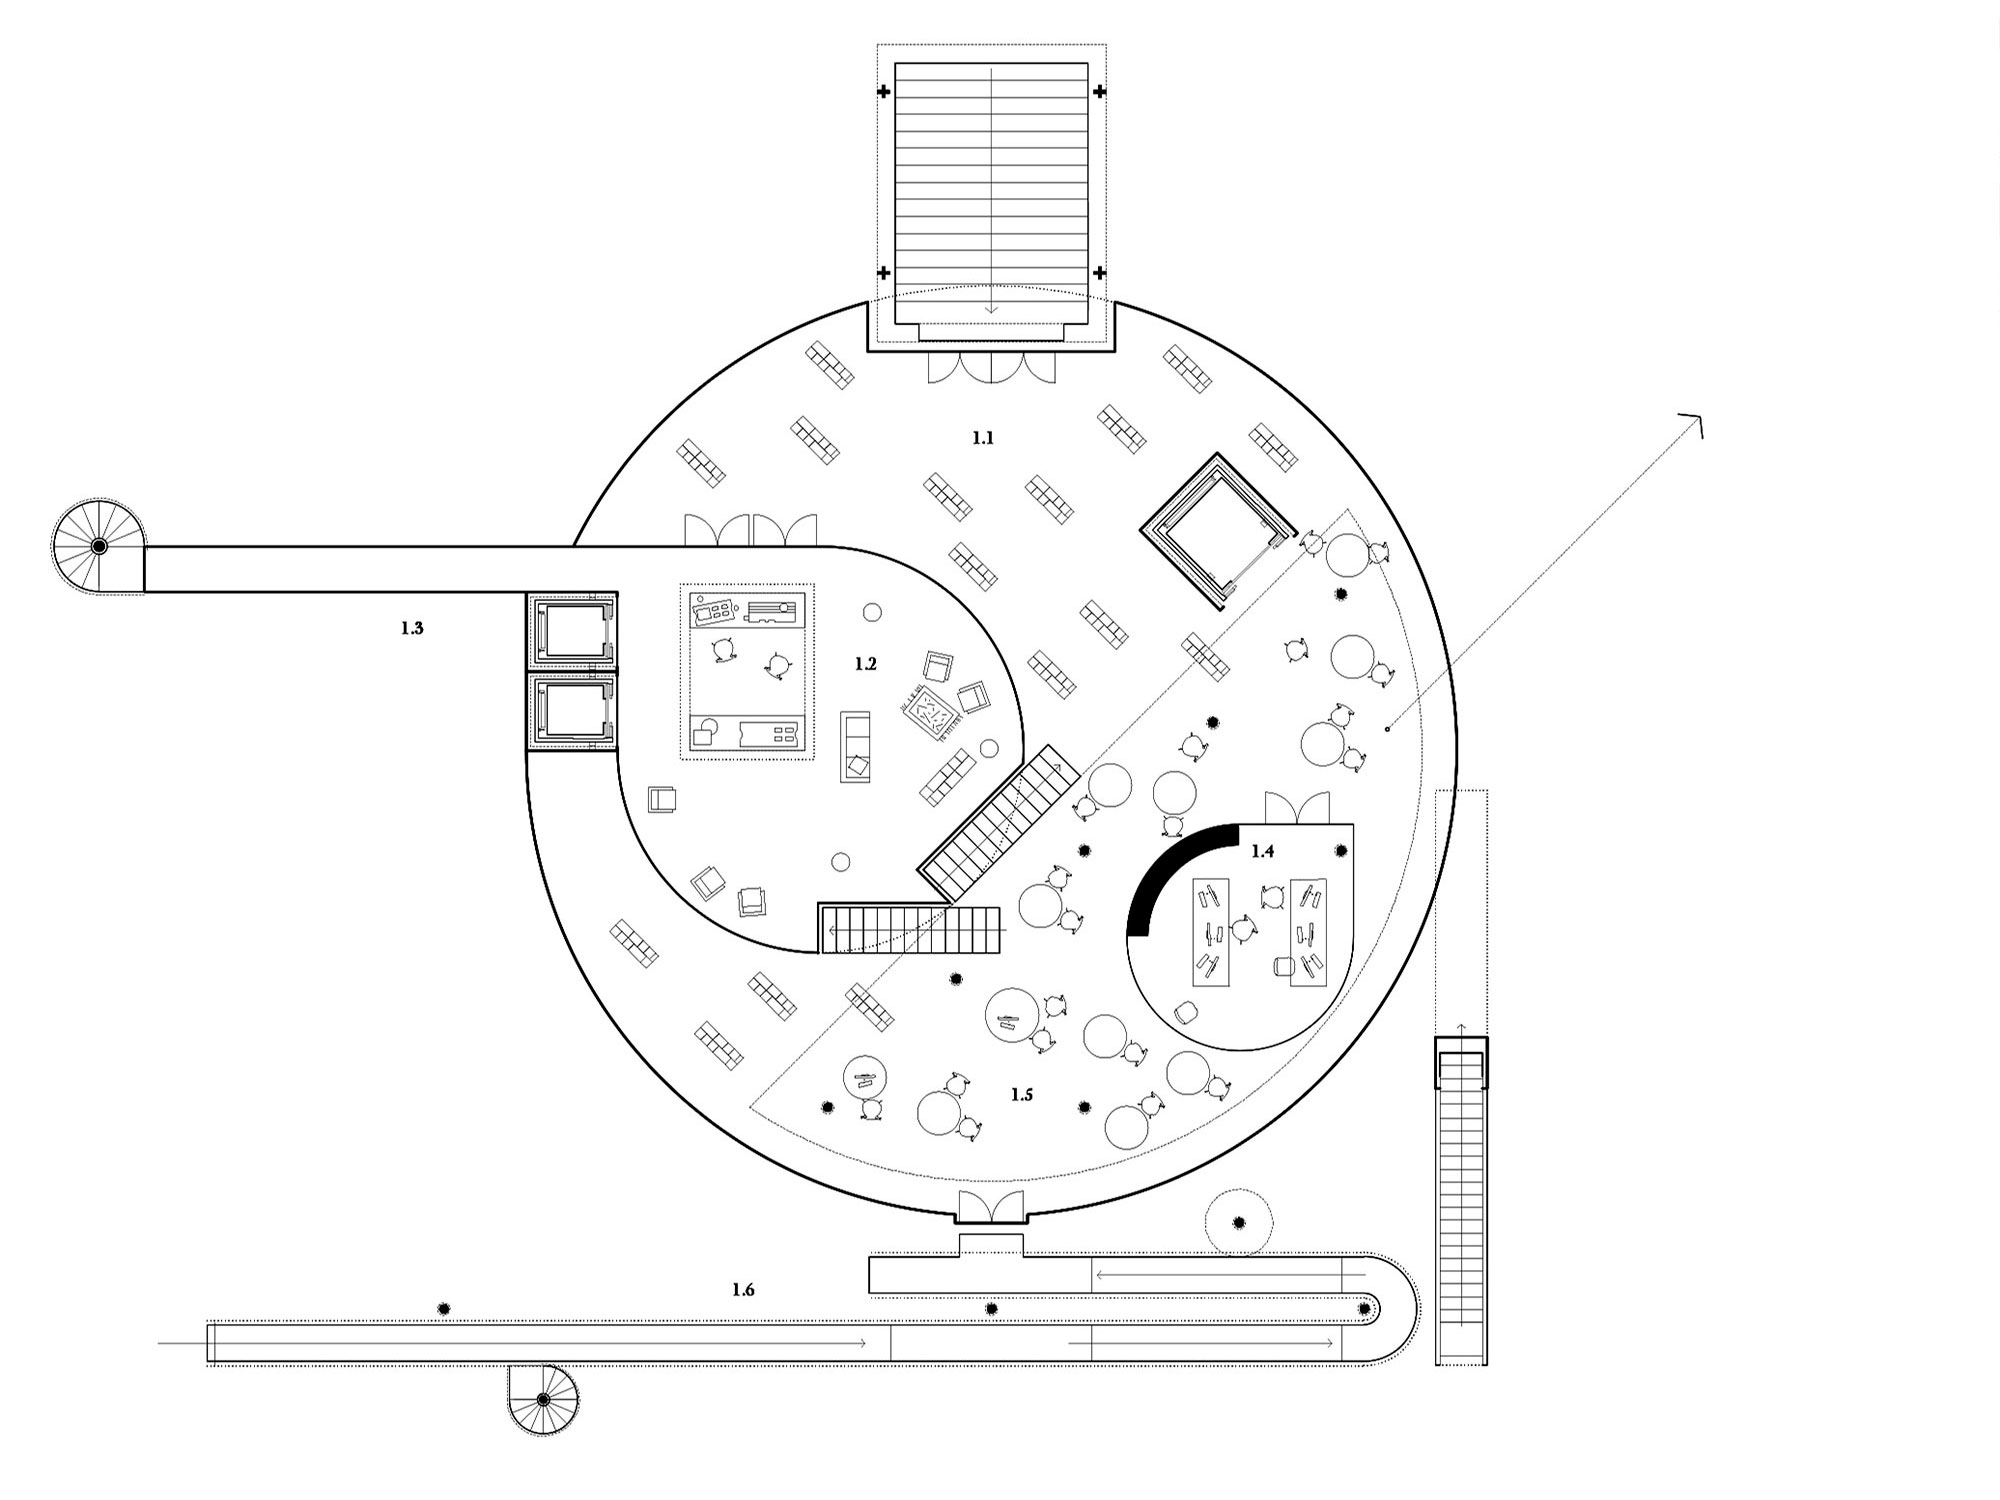 CECQ Circus Maximus Quarteira - Pitarch Library plan 4